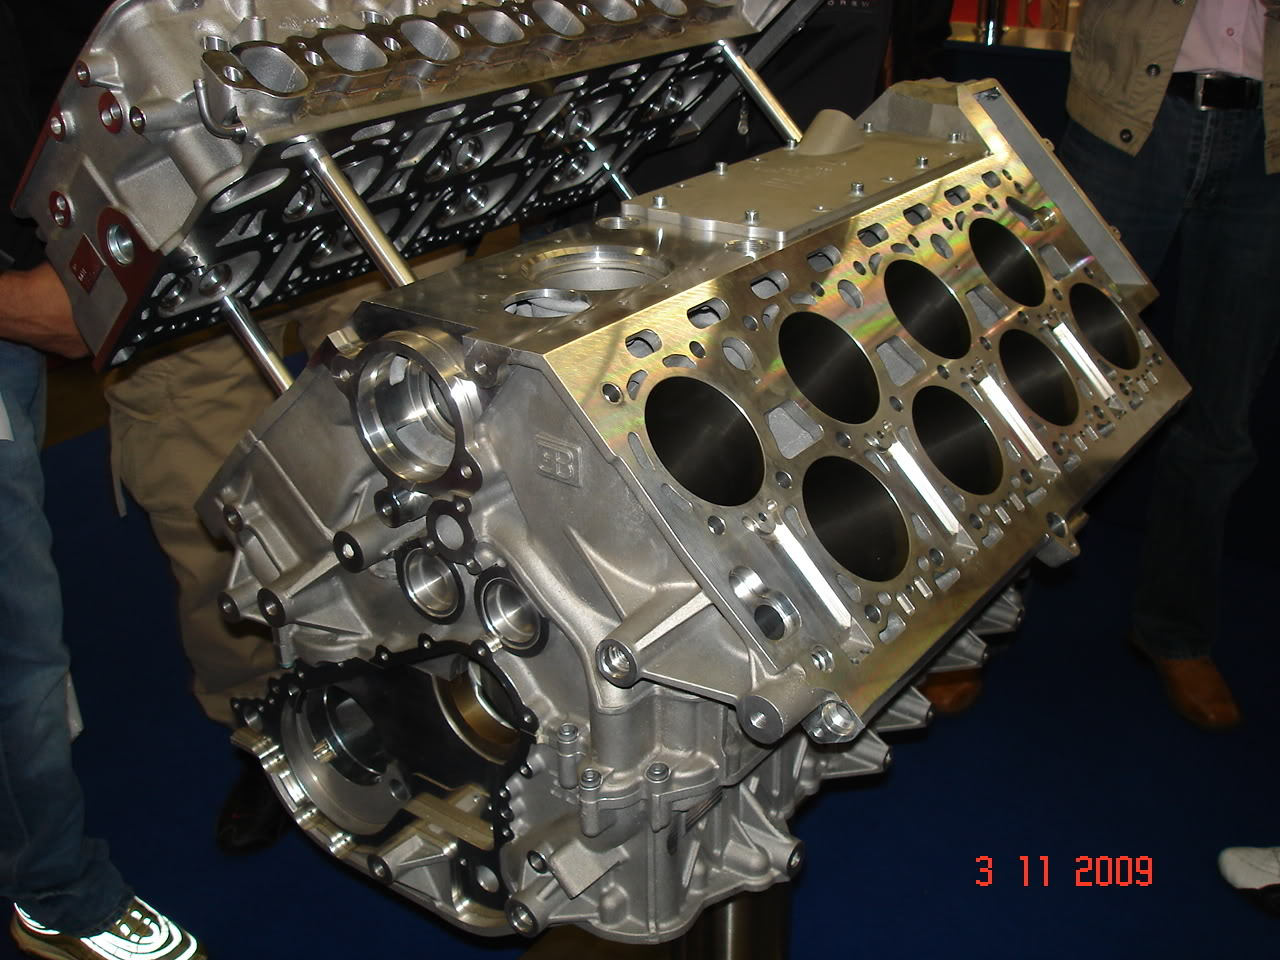 hight resolution of the bare block of a veyron engine showing the cylinder configuration